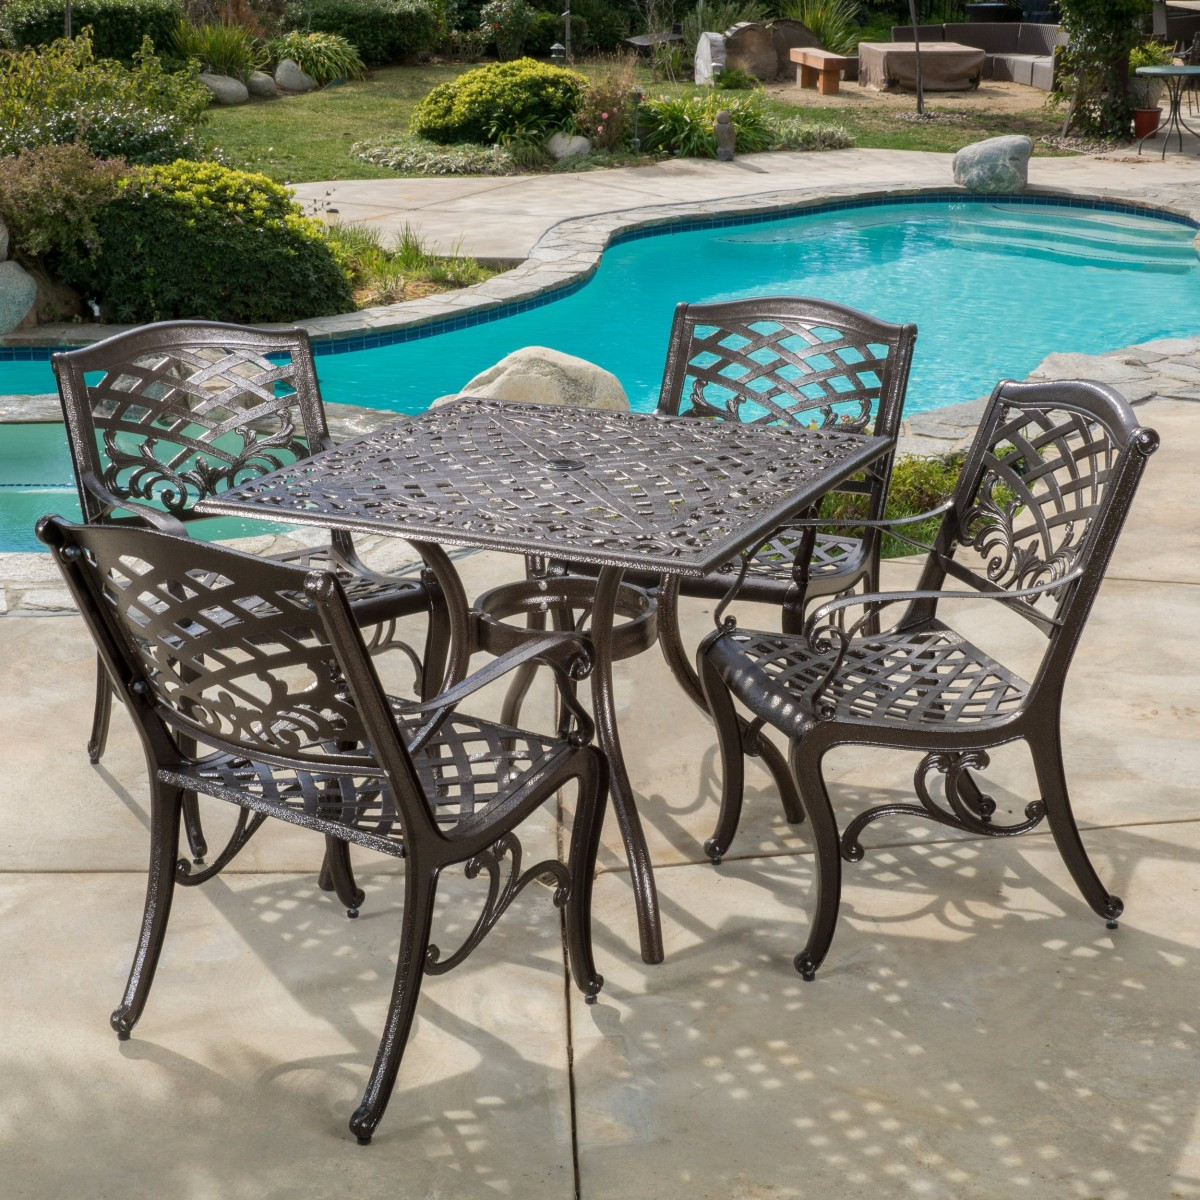 Odena Cast Aluminum 5 Piece Outdoor Dining Set With Square Table Patio Table